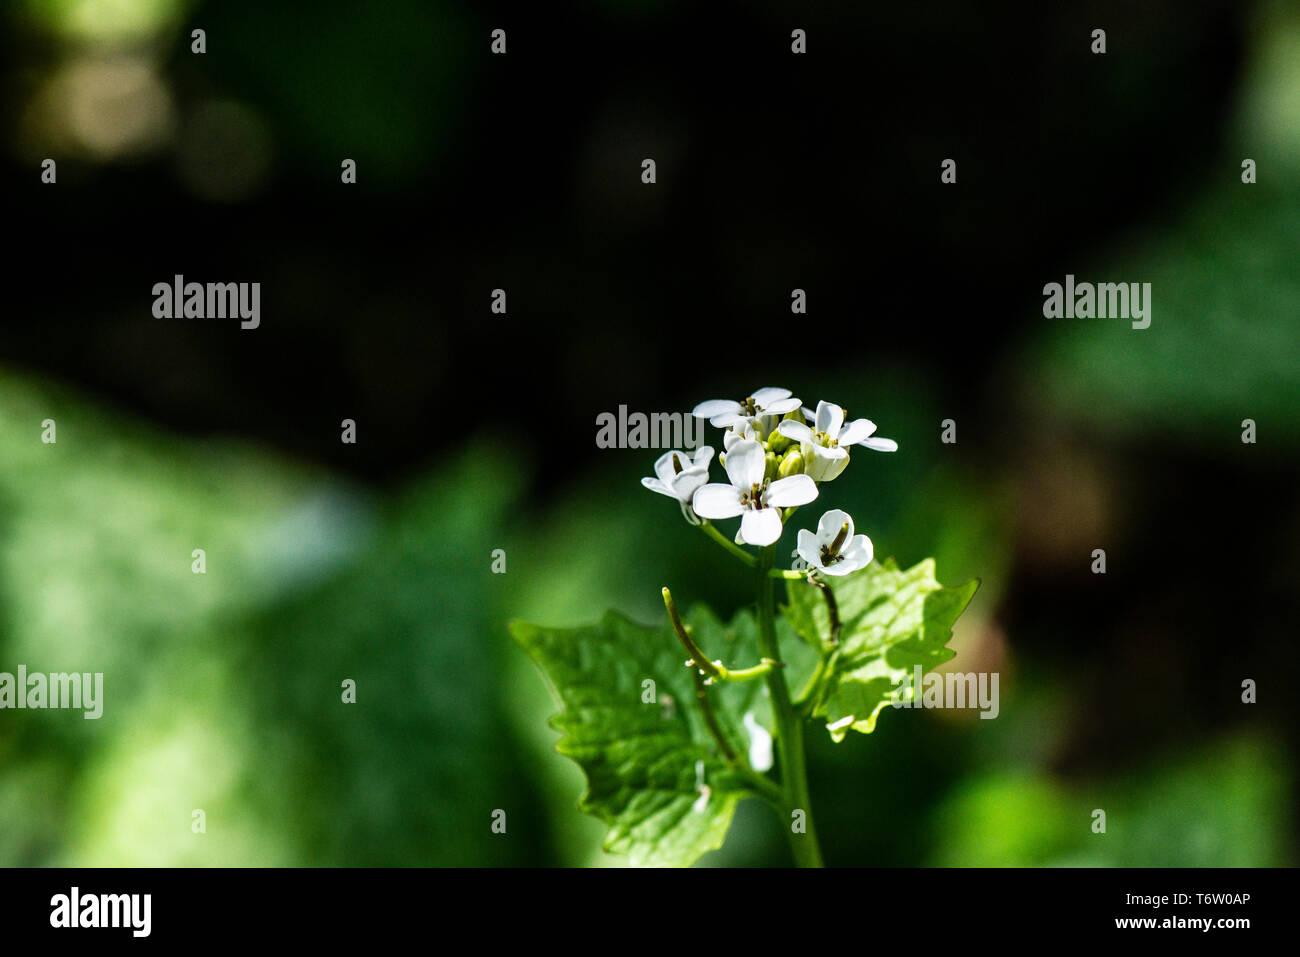 The flowers of a Jack-by-the-hedge (Alliaria petiolata) Stock Photo